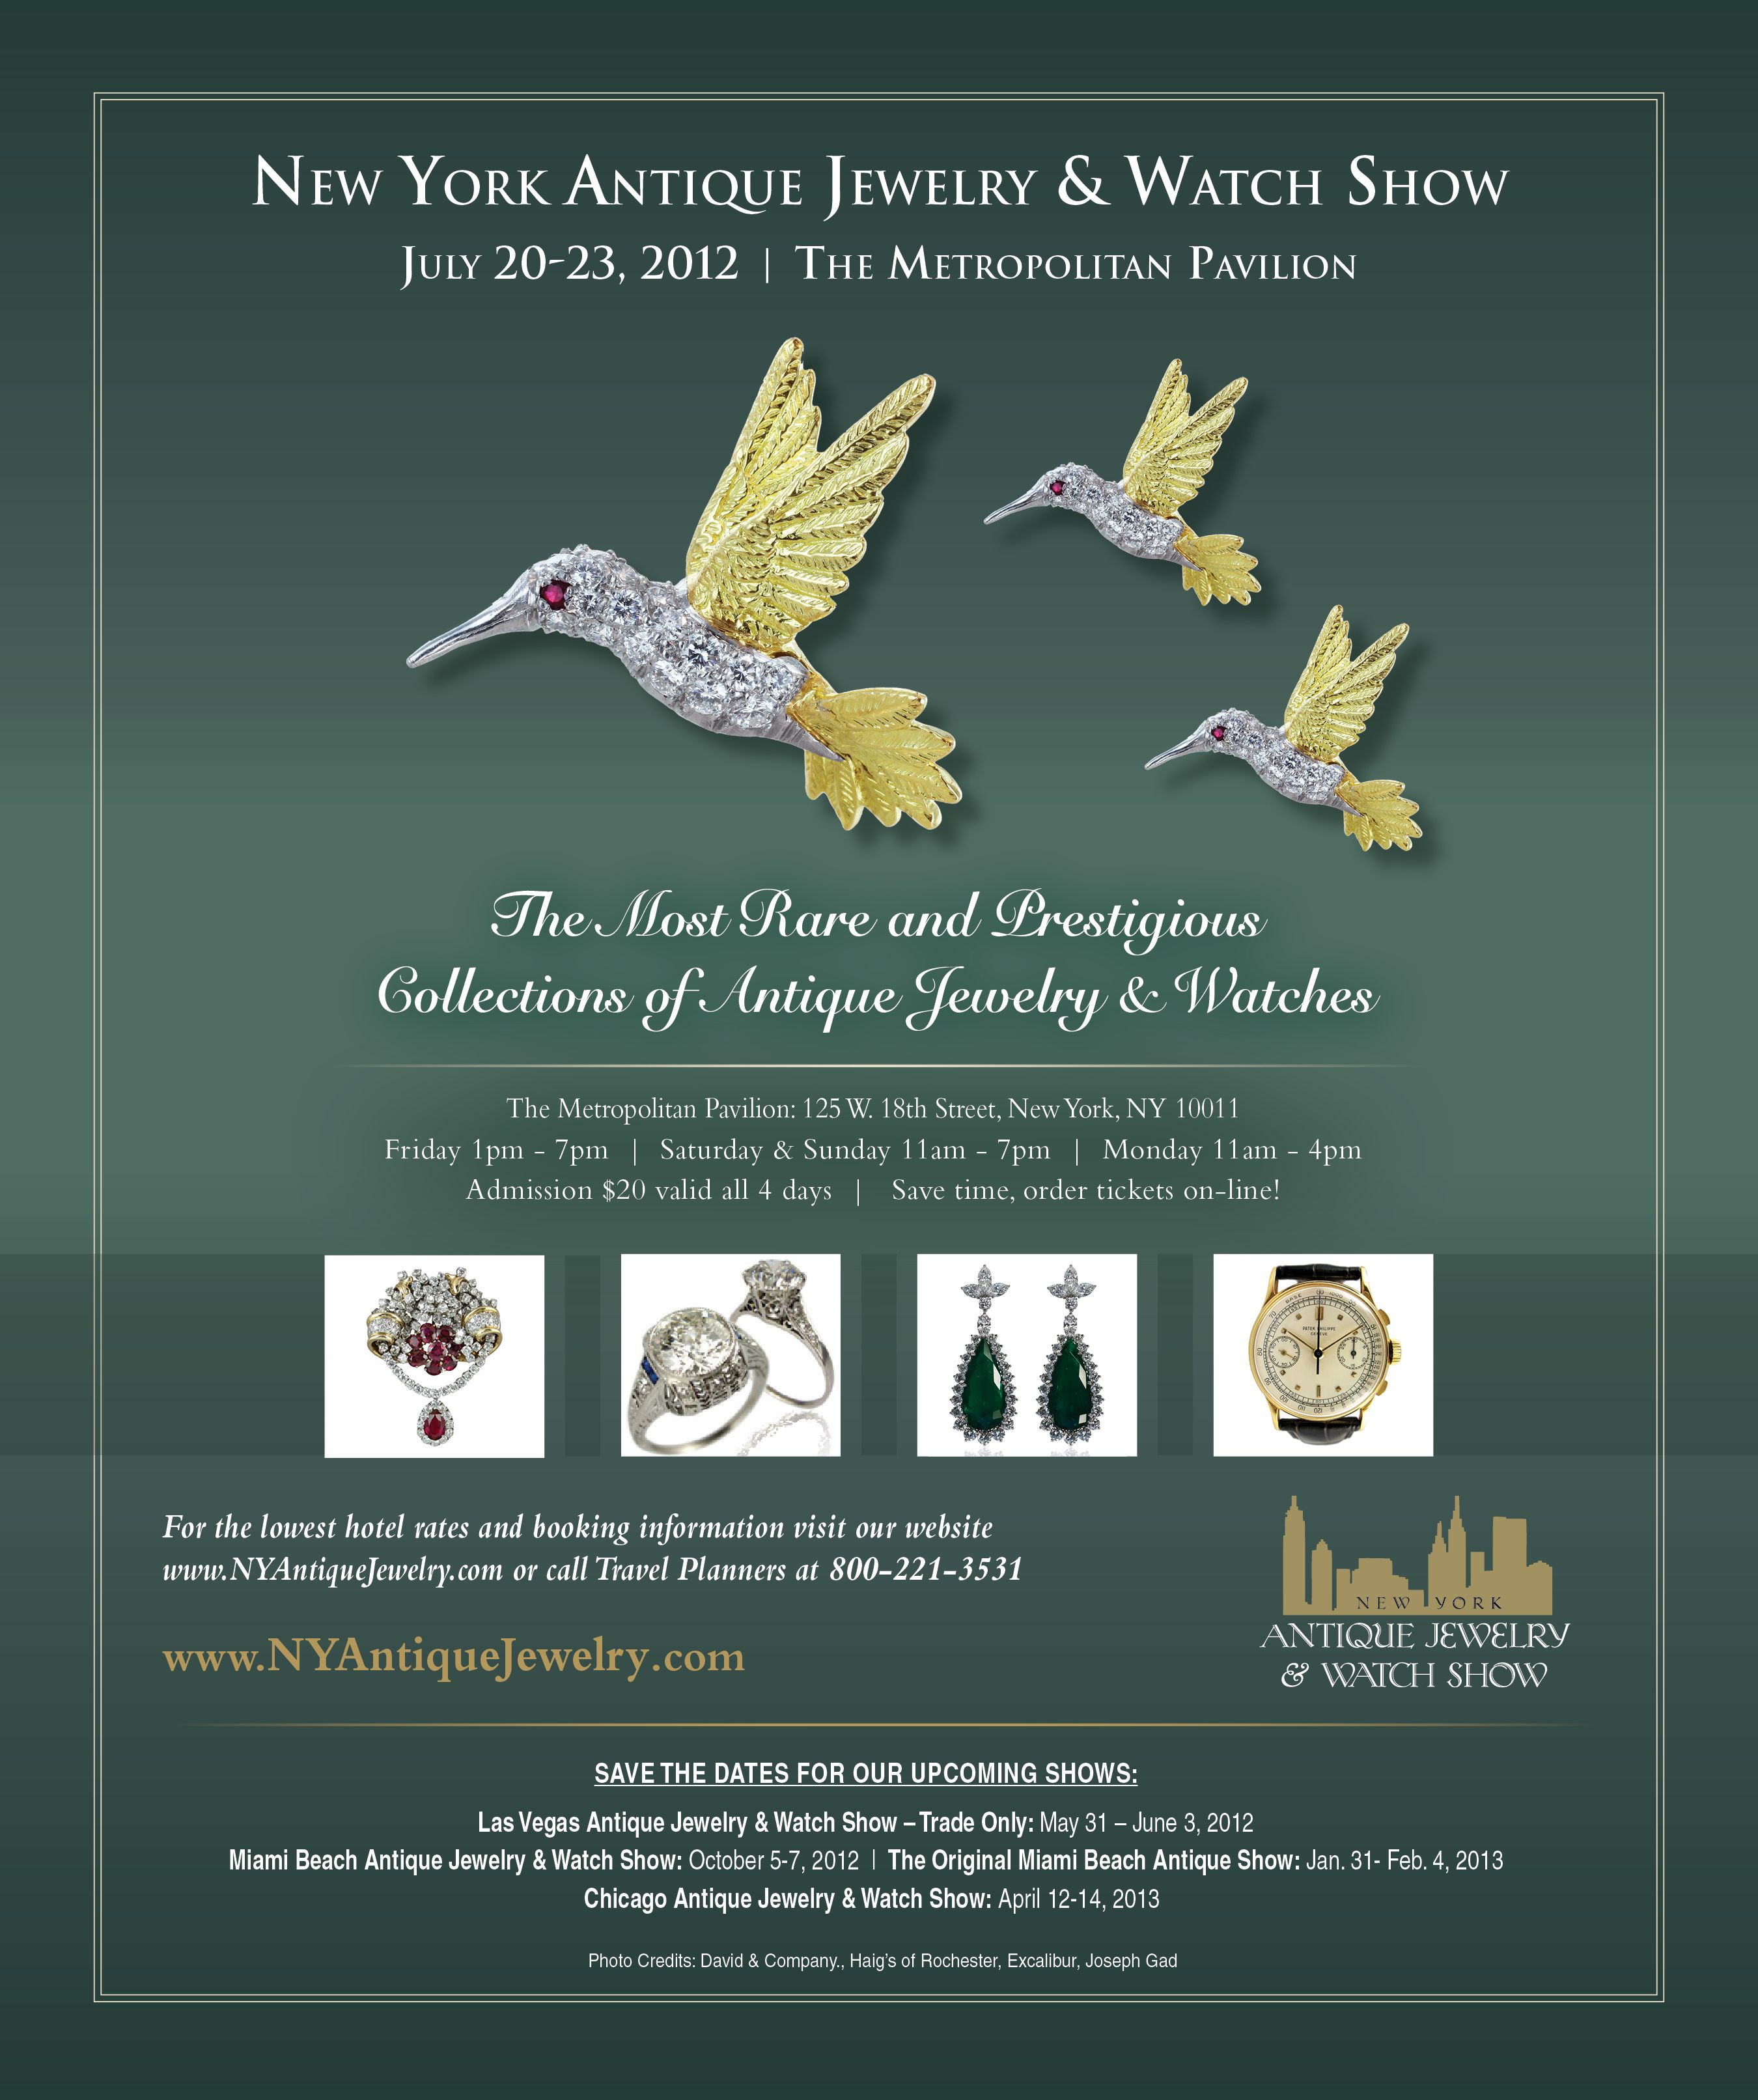 Advertisement for the New York Antique Jewelry Watch Show by